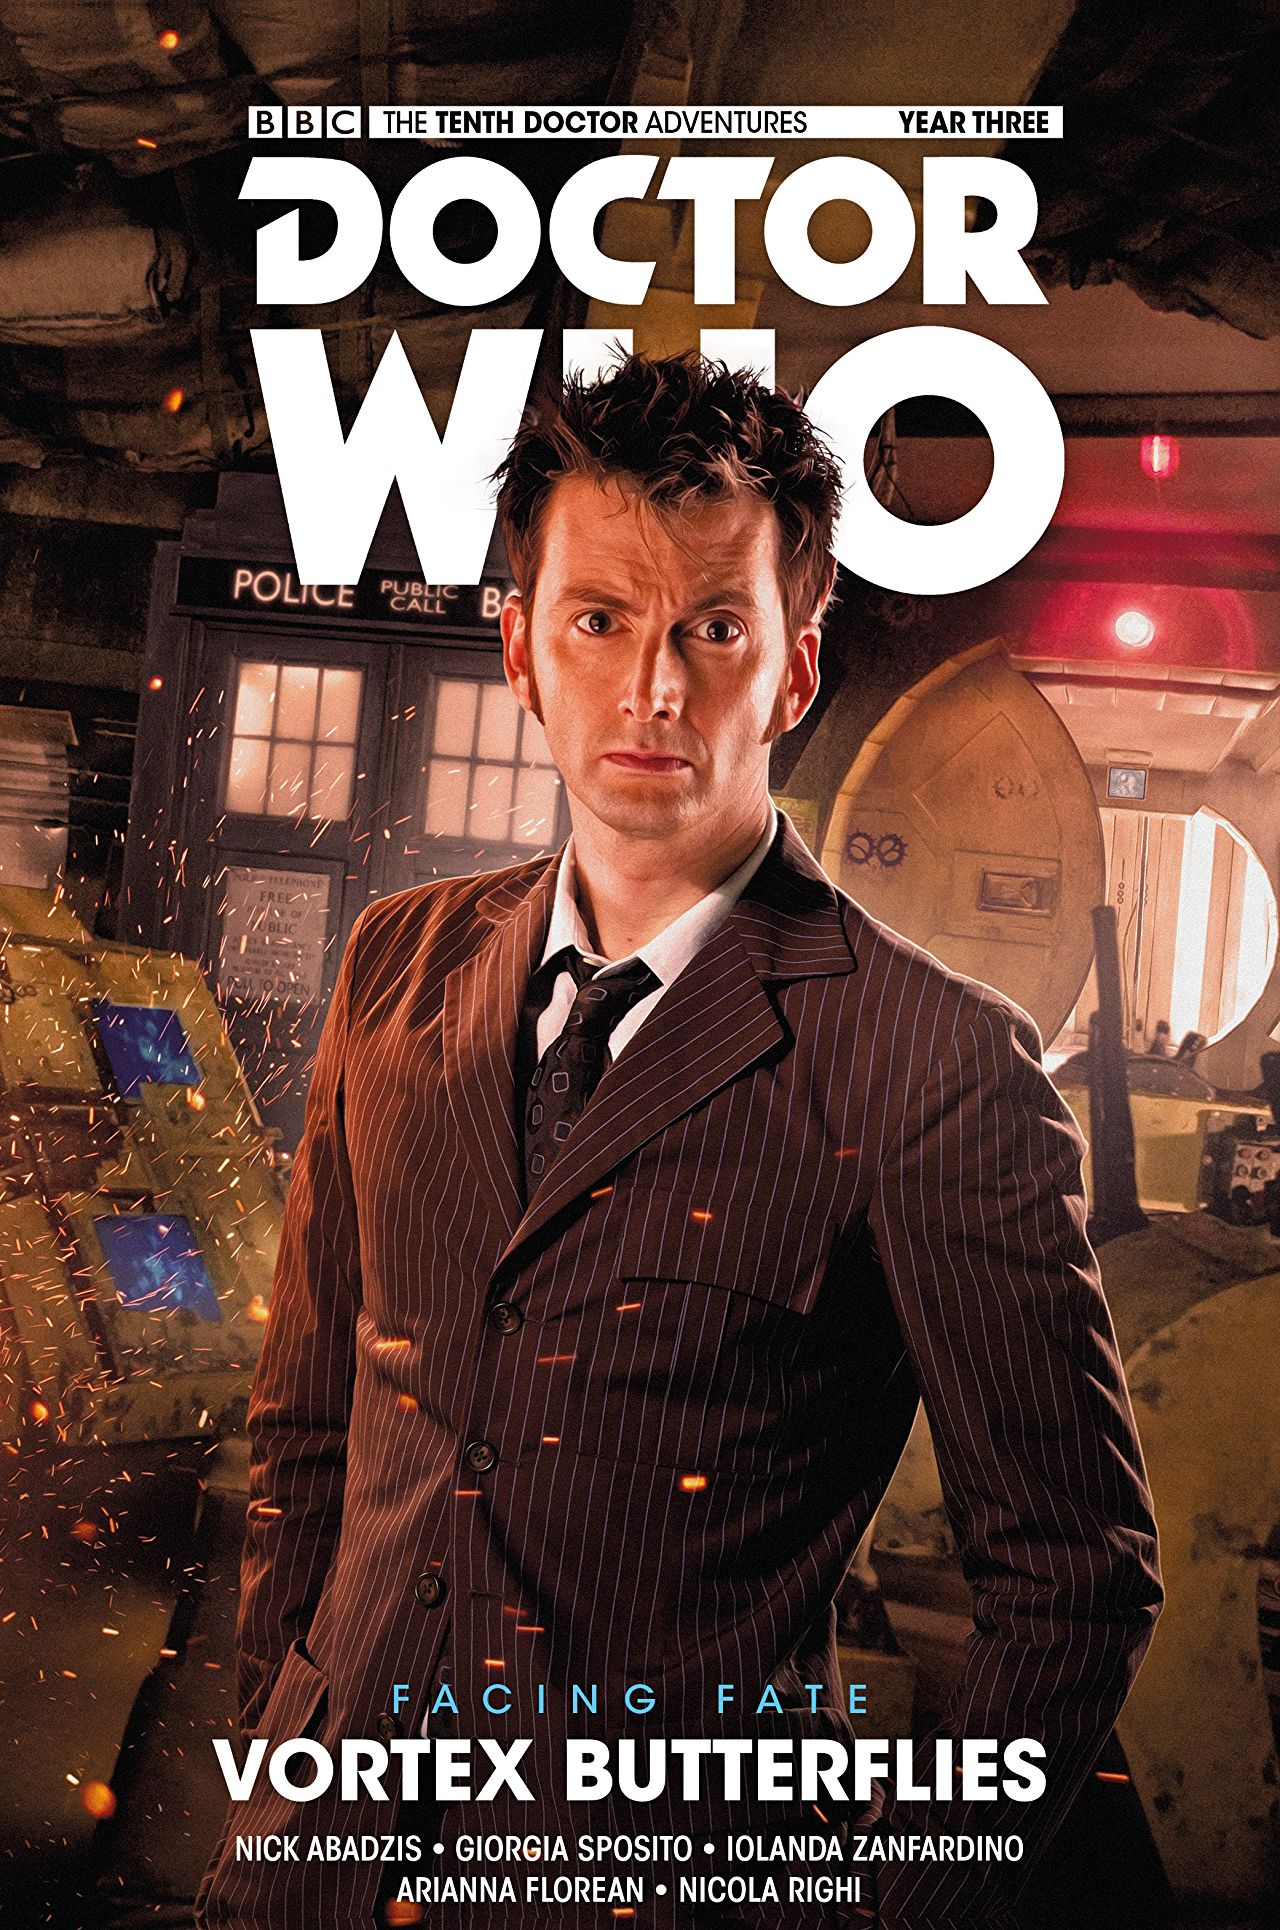 Doctor Who Year 3 Vol 2 -  Vortex Butterflies